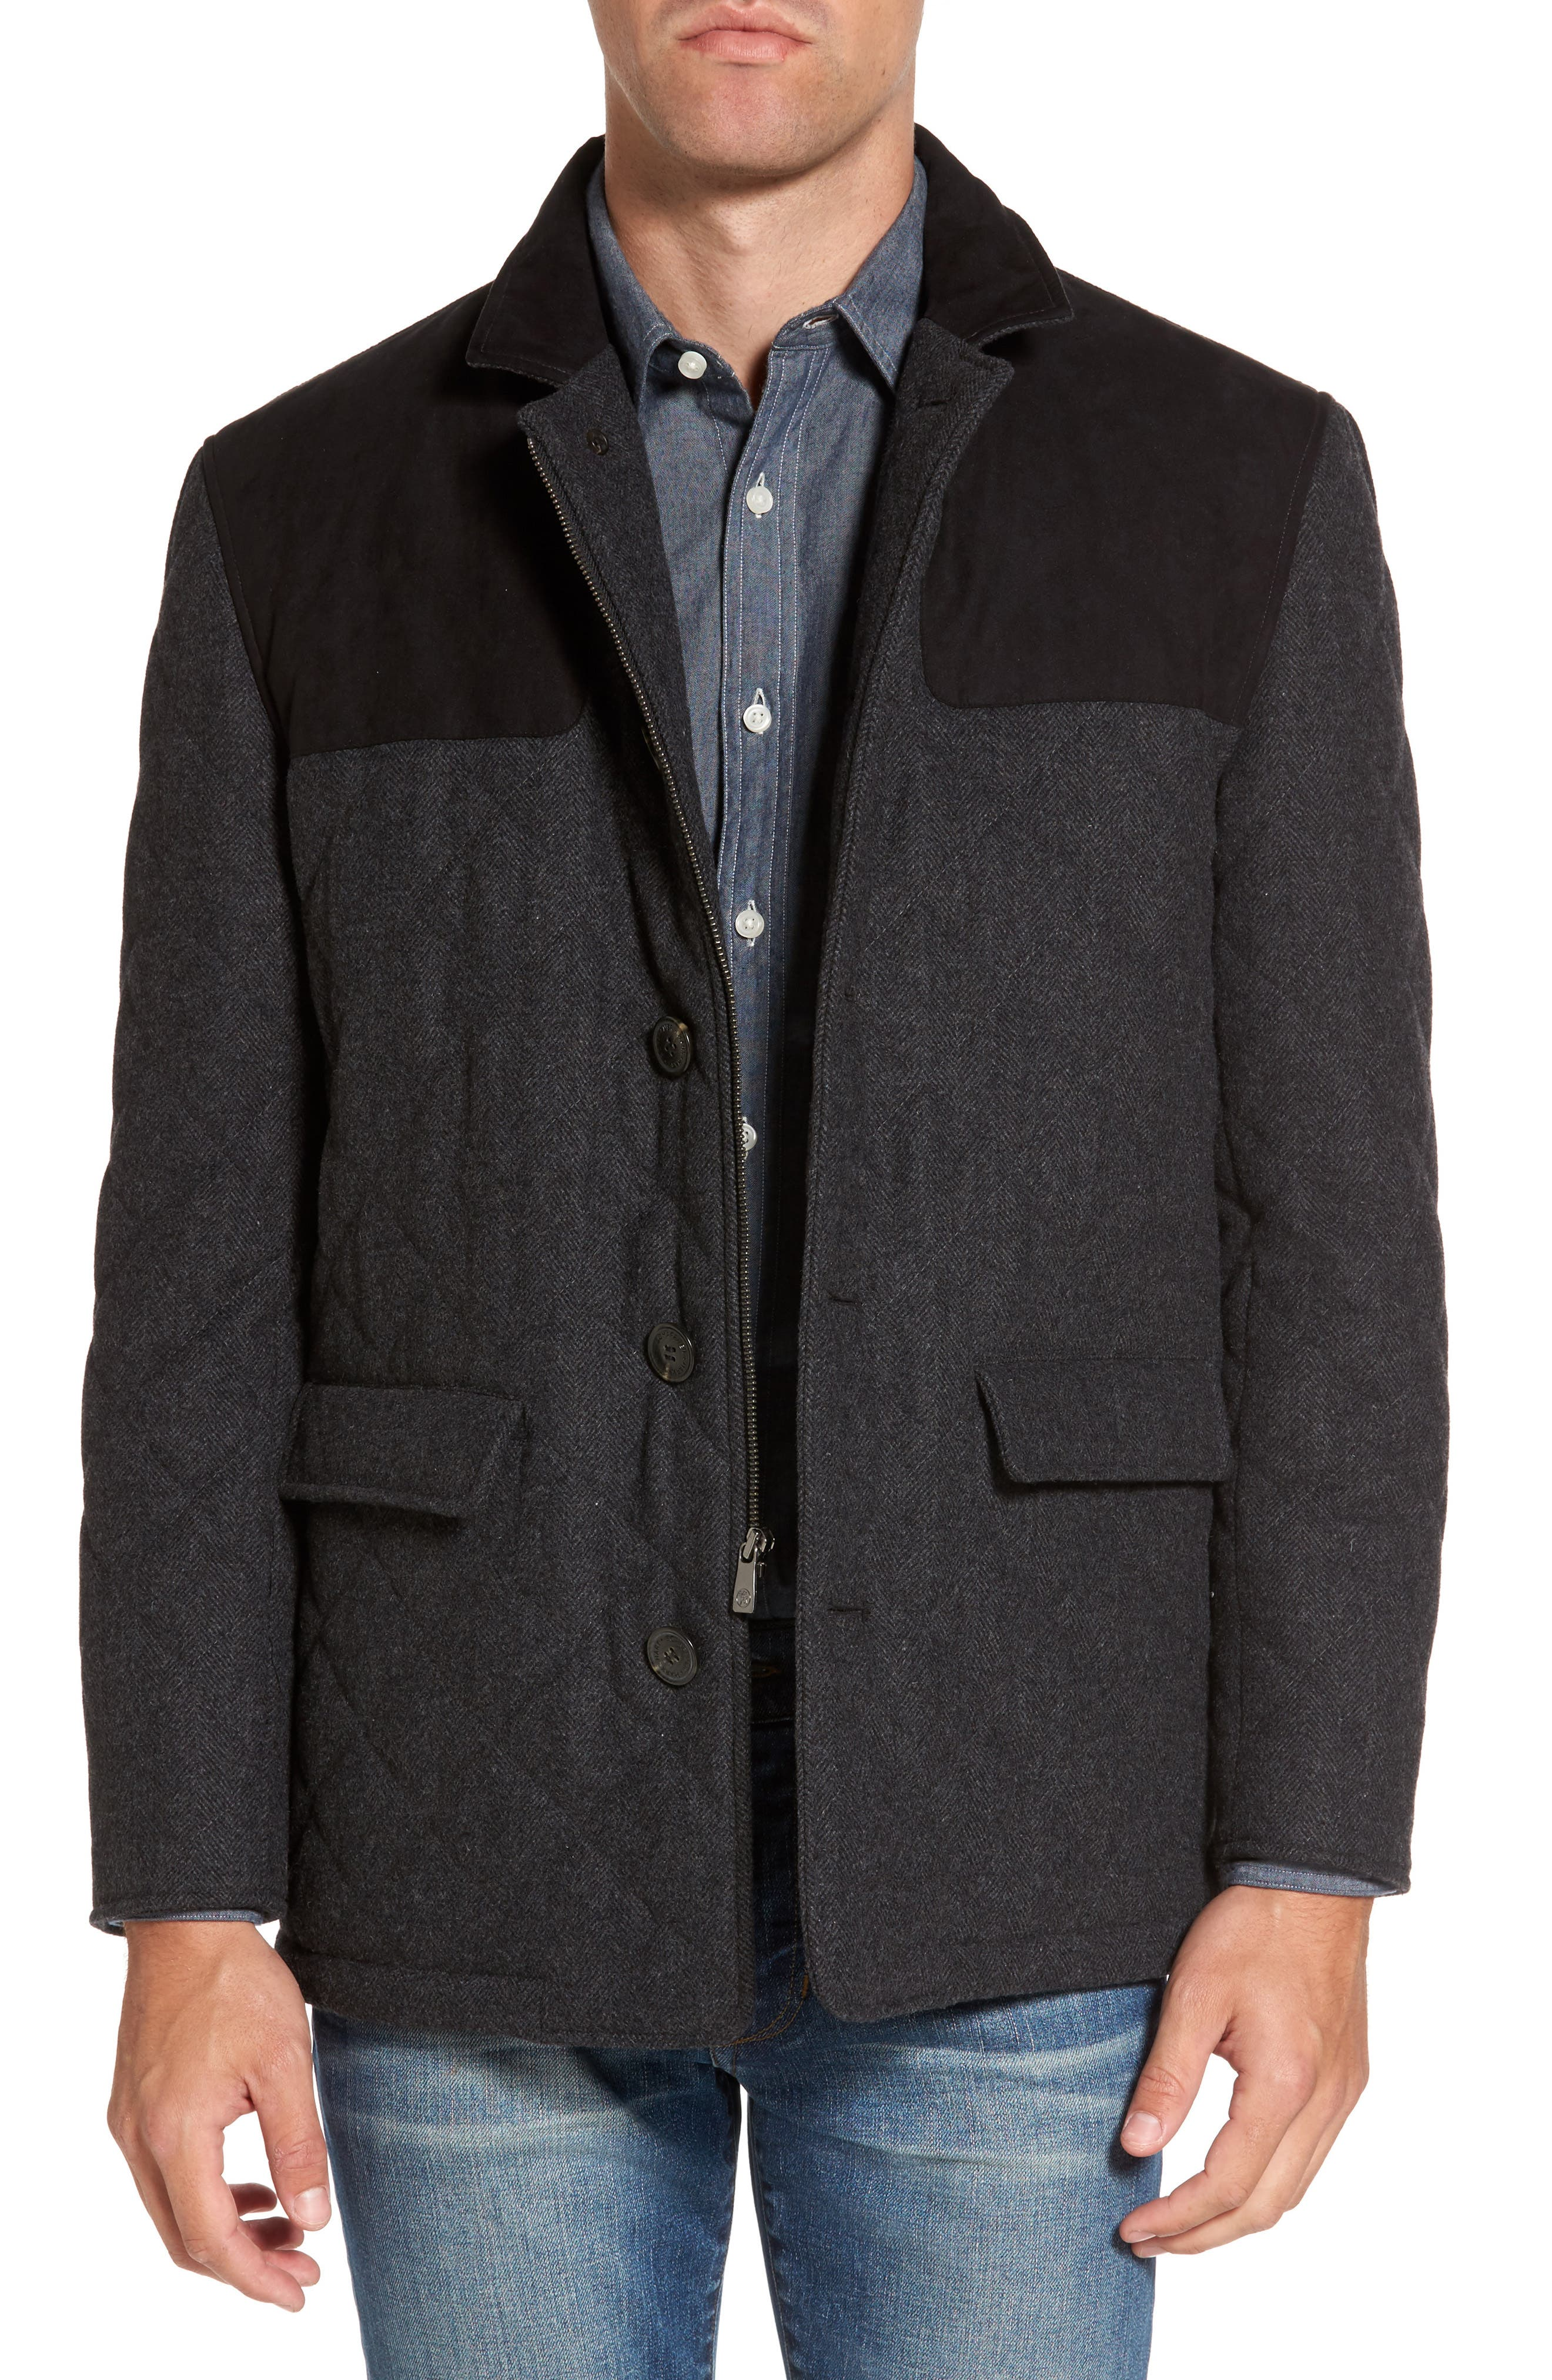 'Shooter' Wool Blend Quilted Jacket,                             Main thumbnail 1, color,                             Charcoal